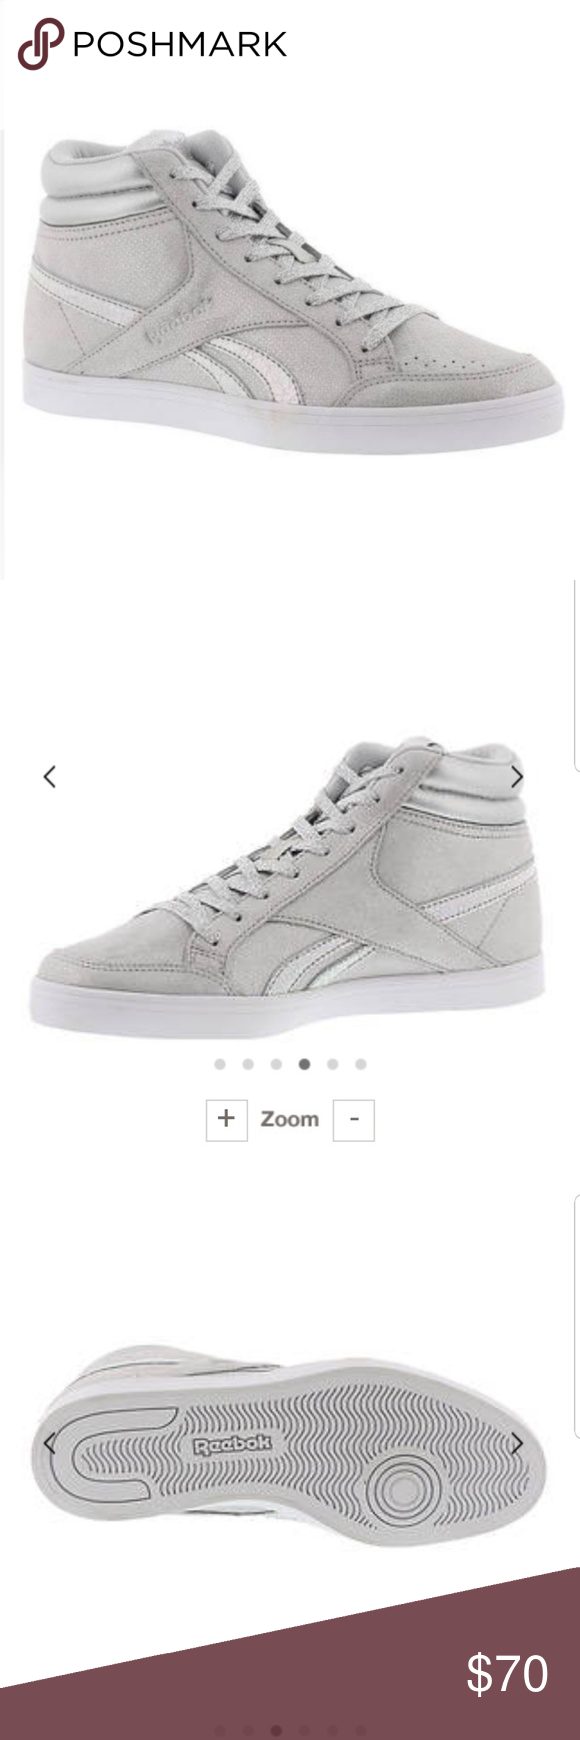 91370b556ea Reebok Royal Aspire 2 Silver Color  Silver Condition  NWT- In Box Style  Women s  High Top Sneakers